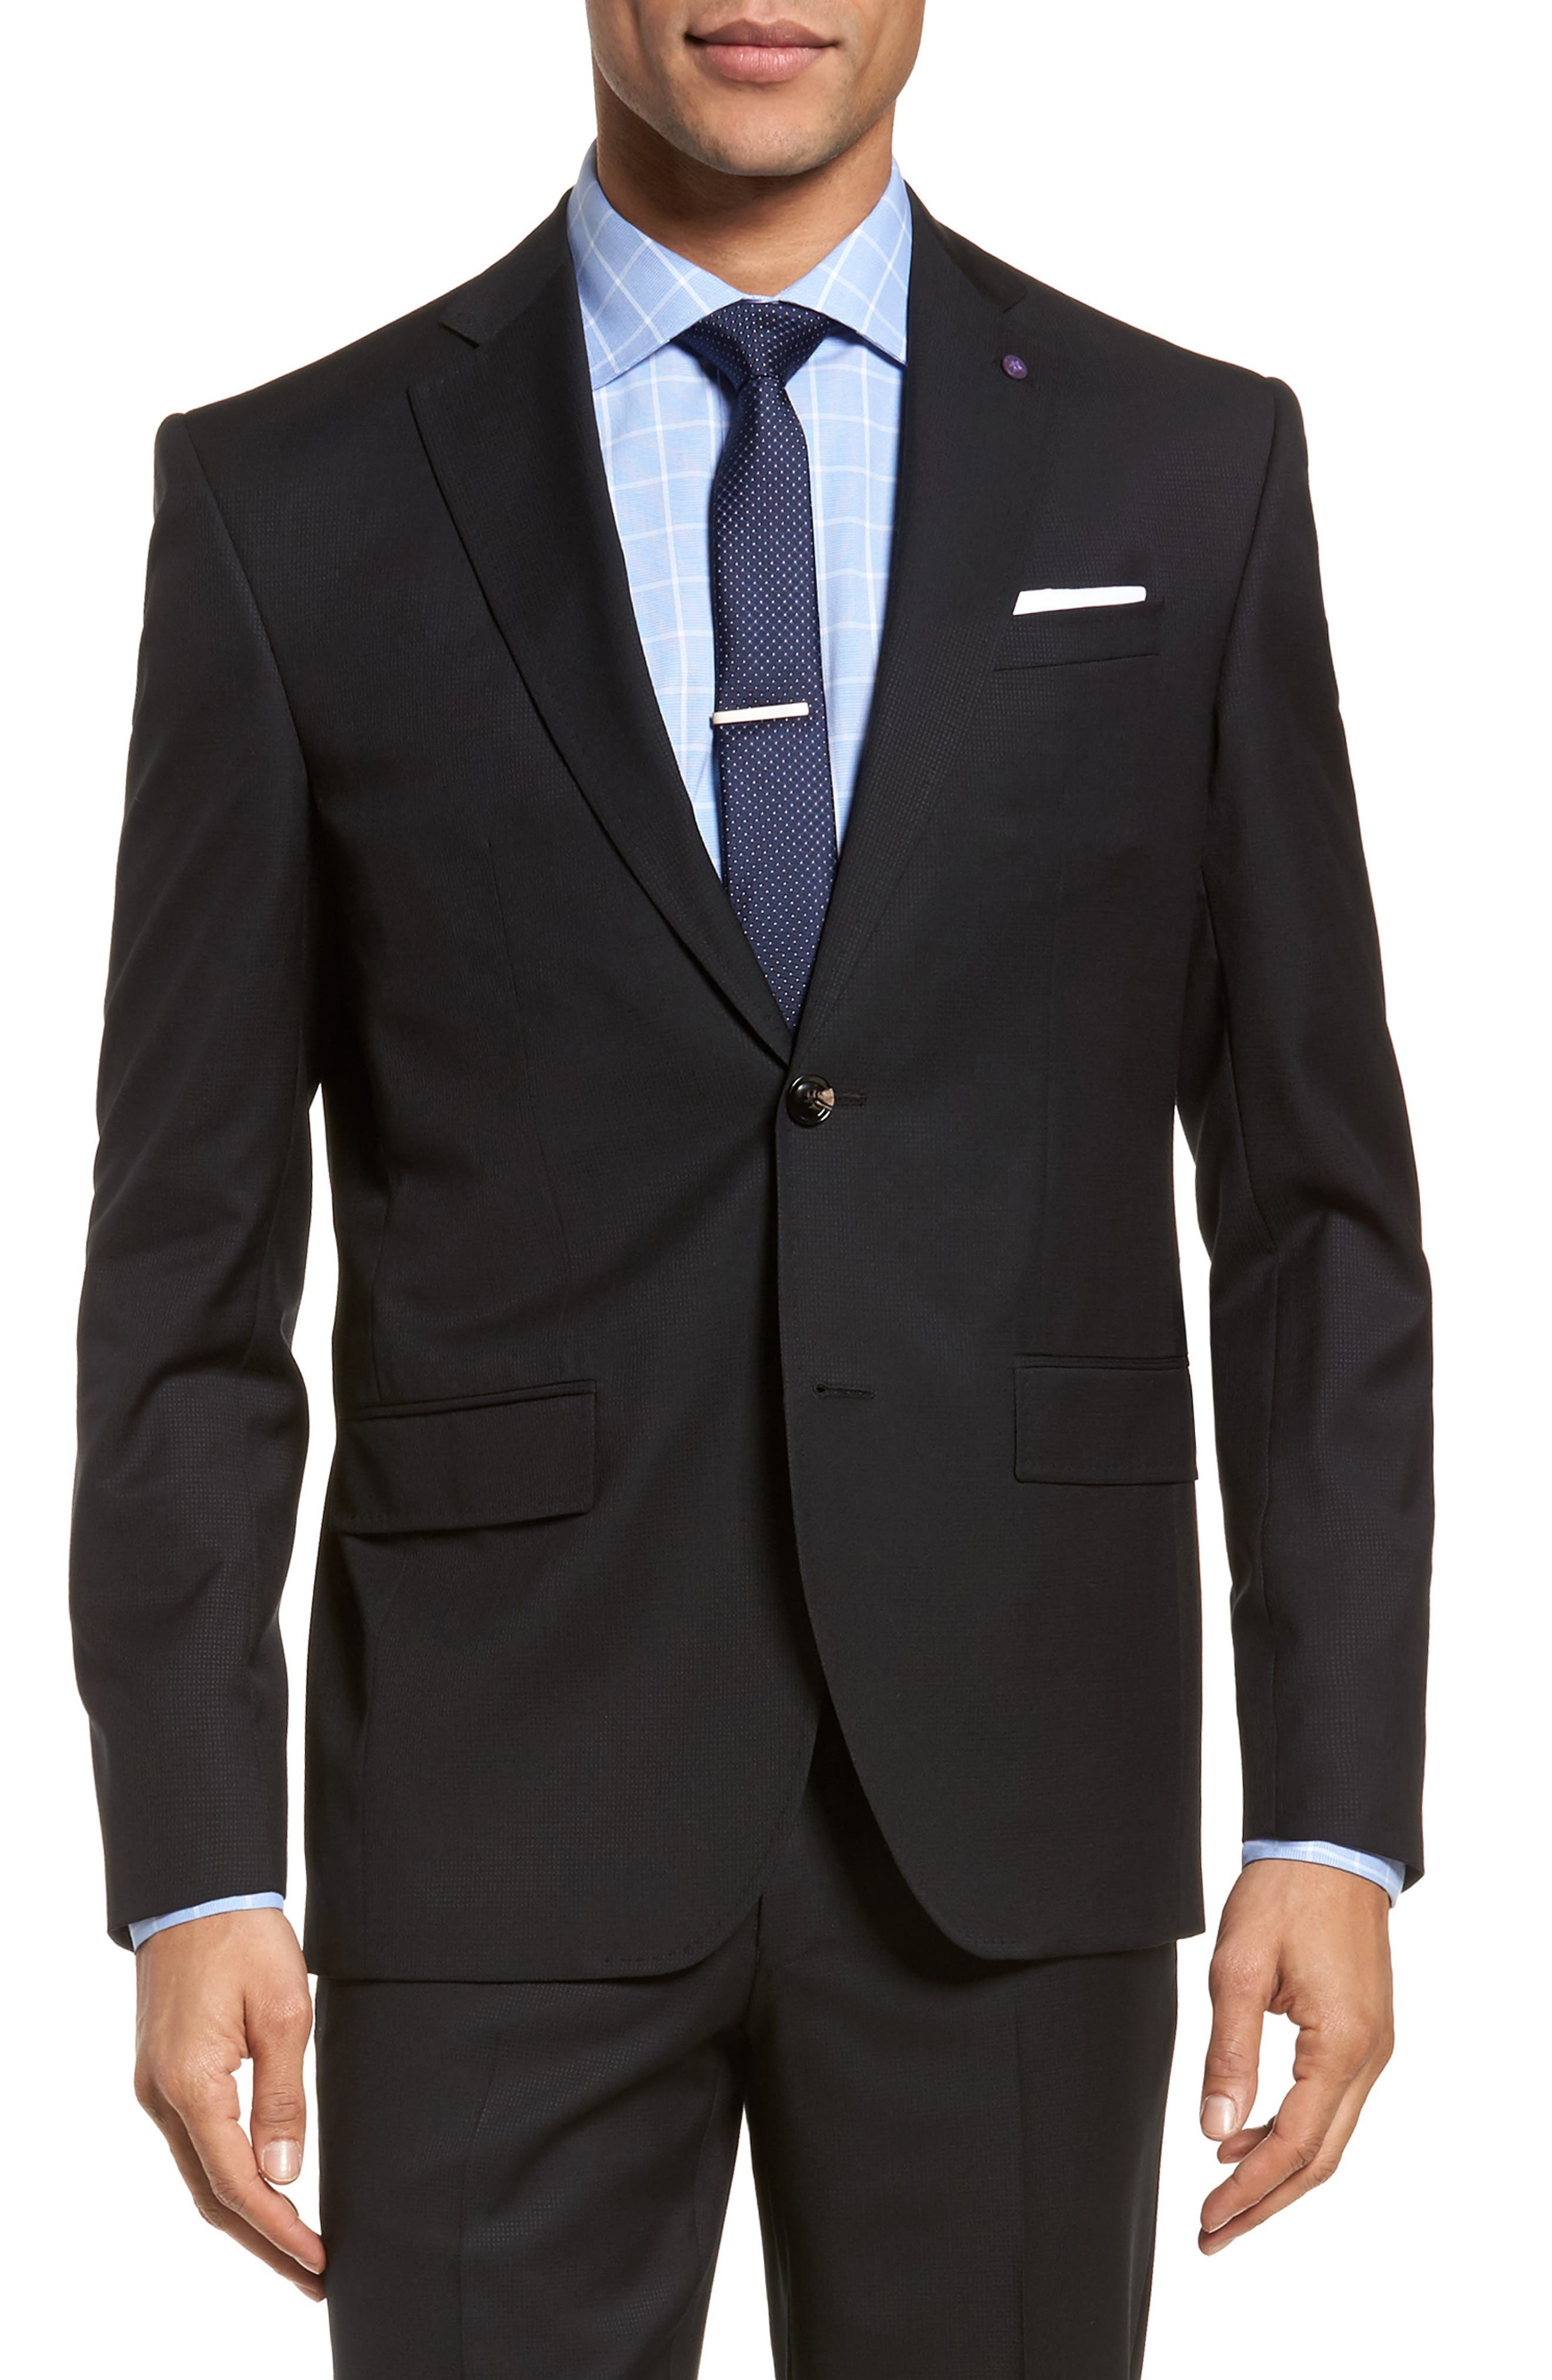 Roger Extra Slim Fit Solid Wool Suit,                             Alternate thumbnail 5, color,                             Black